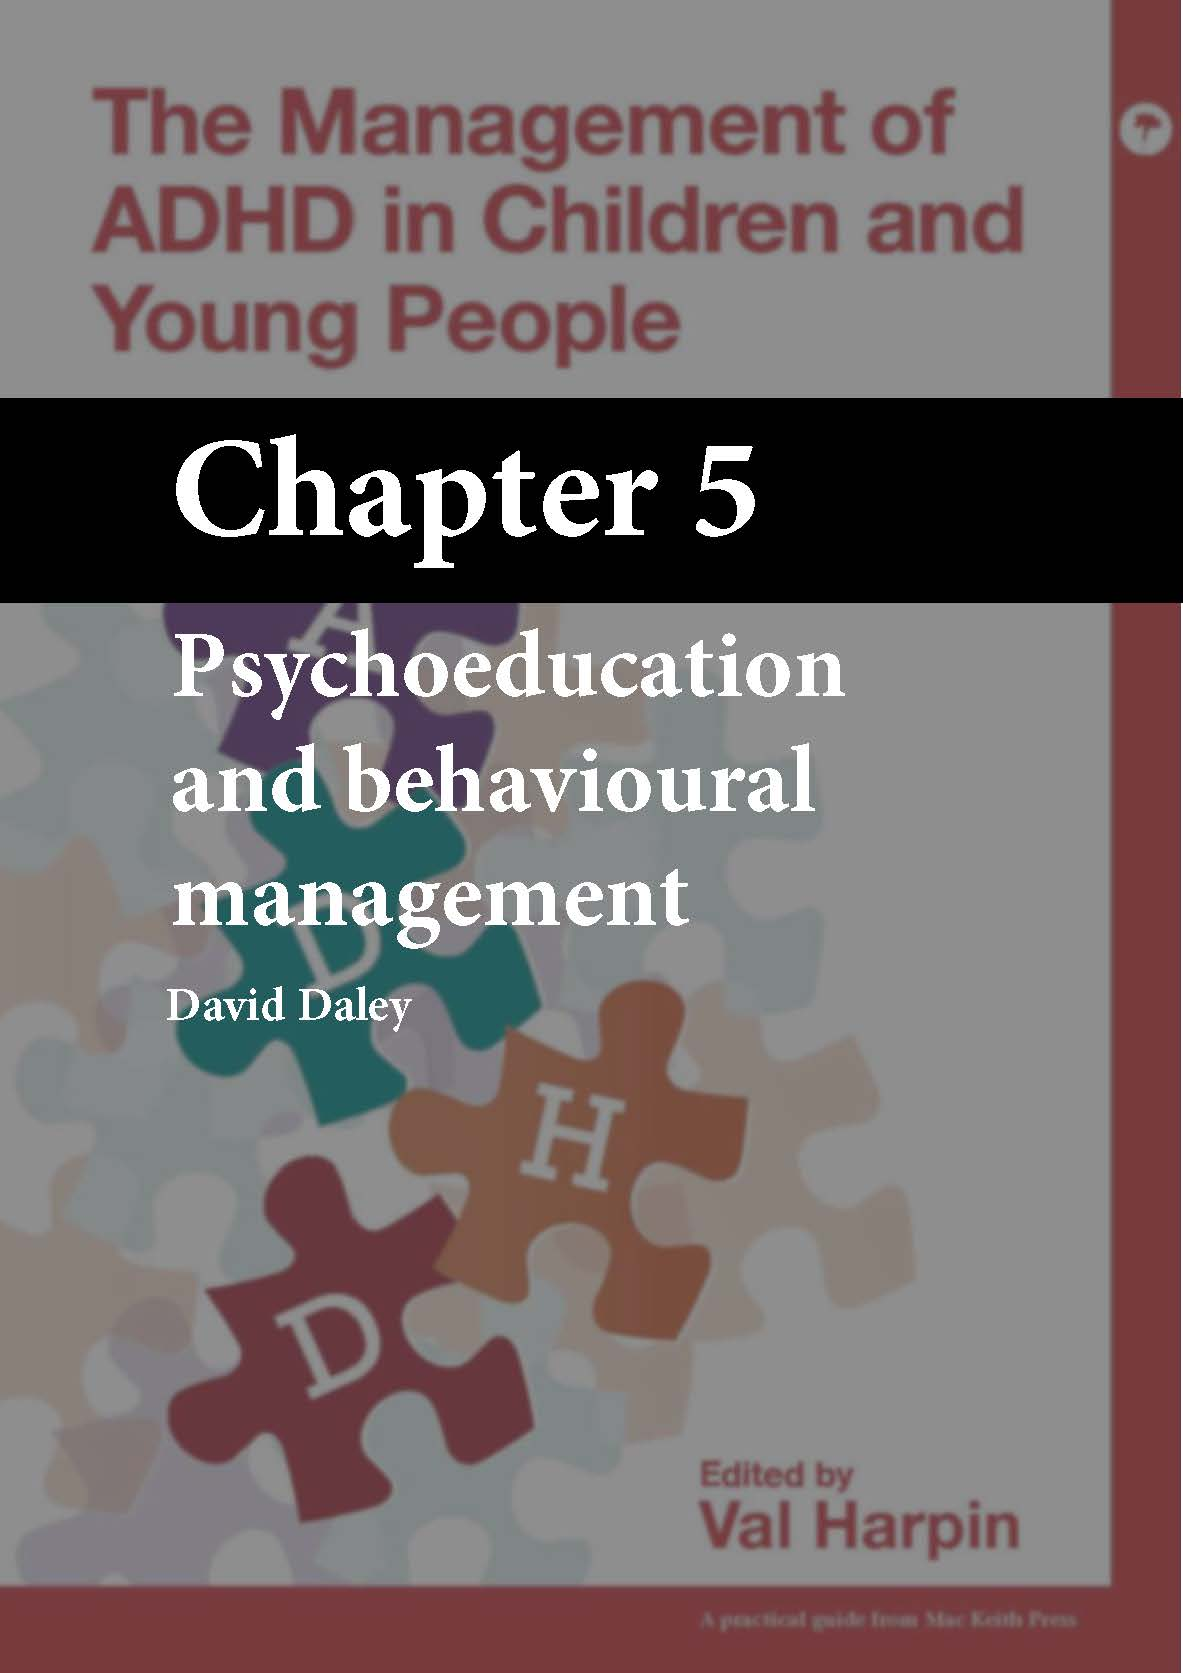 The Management of ADHD in Children and Young People, Harpin, Chapter 5 cover